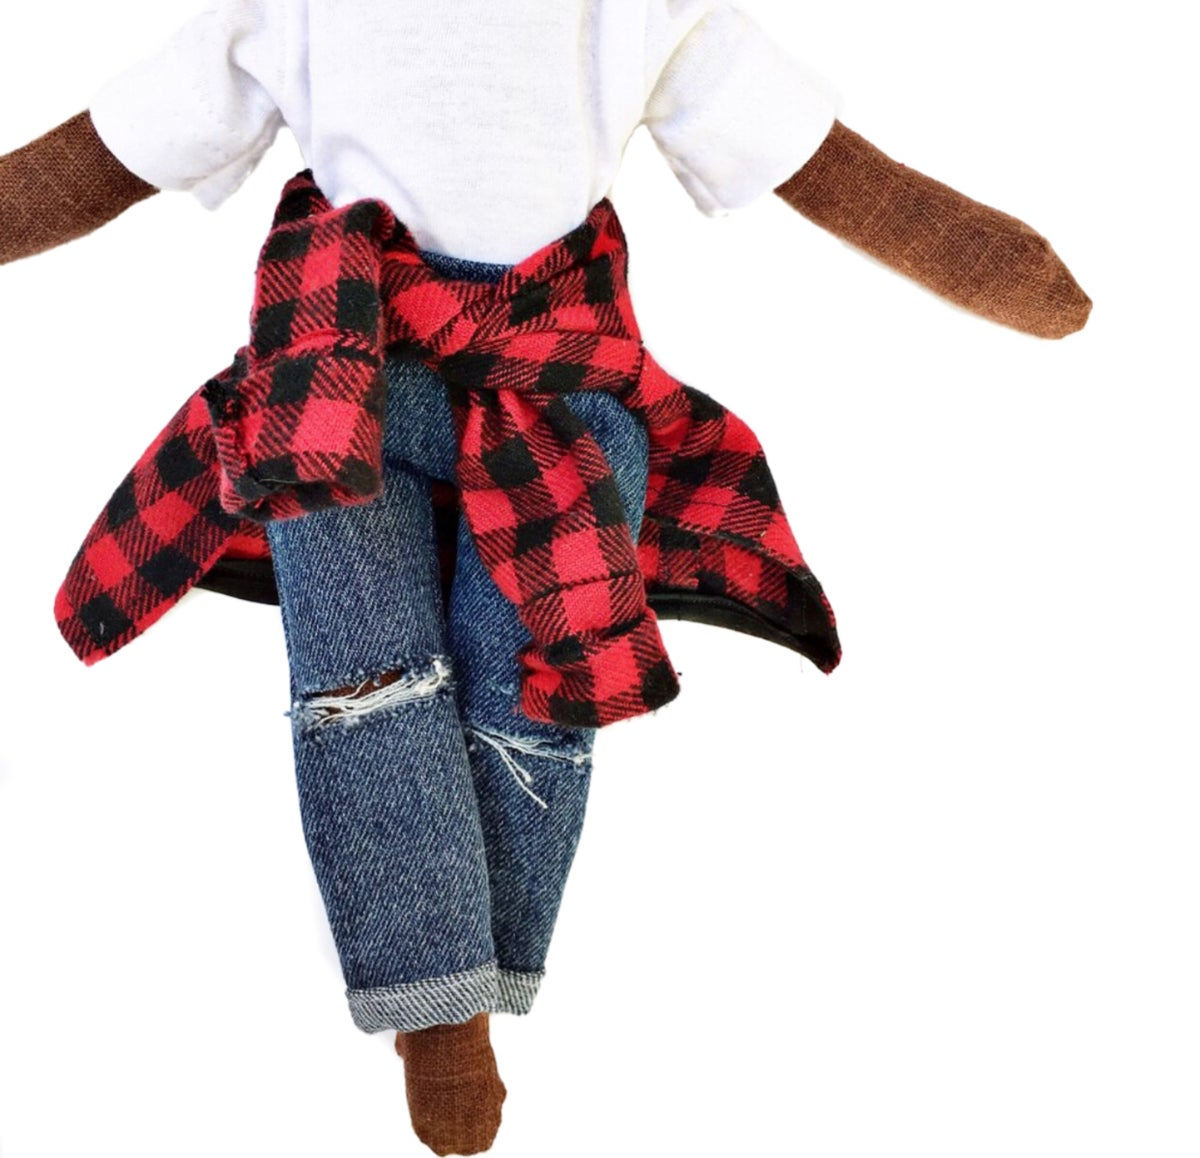 3pc Accessory- distressed denim pant,white tee, plaid wrap around (PLEASE NOTE: THIS ORDER WILL SHIP